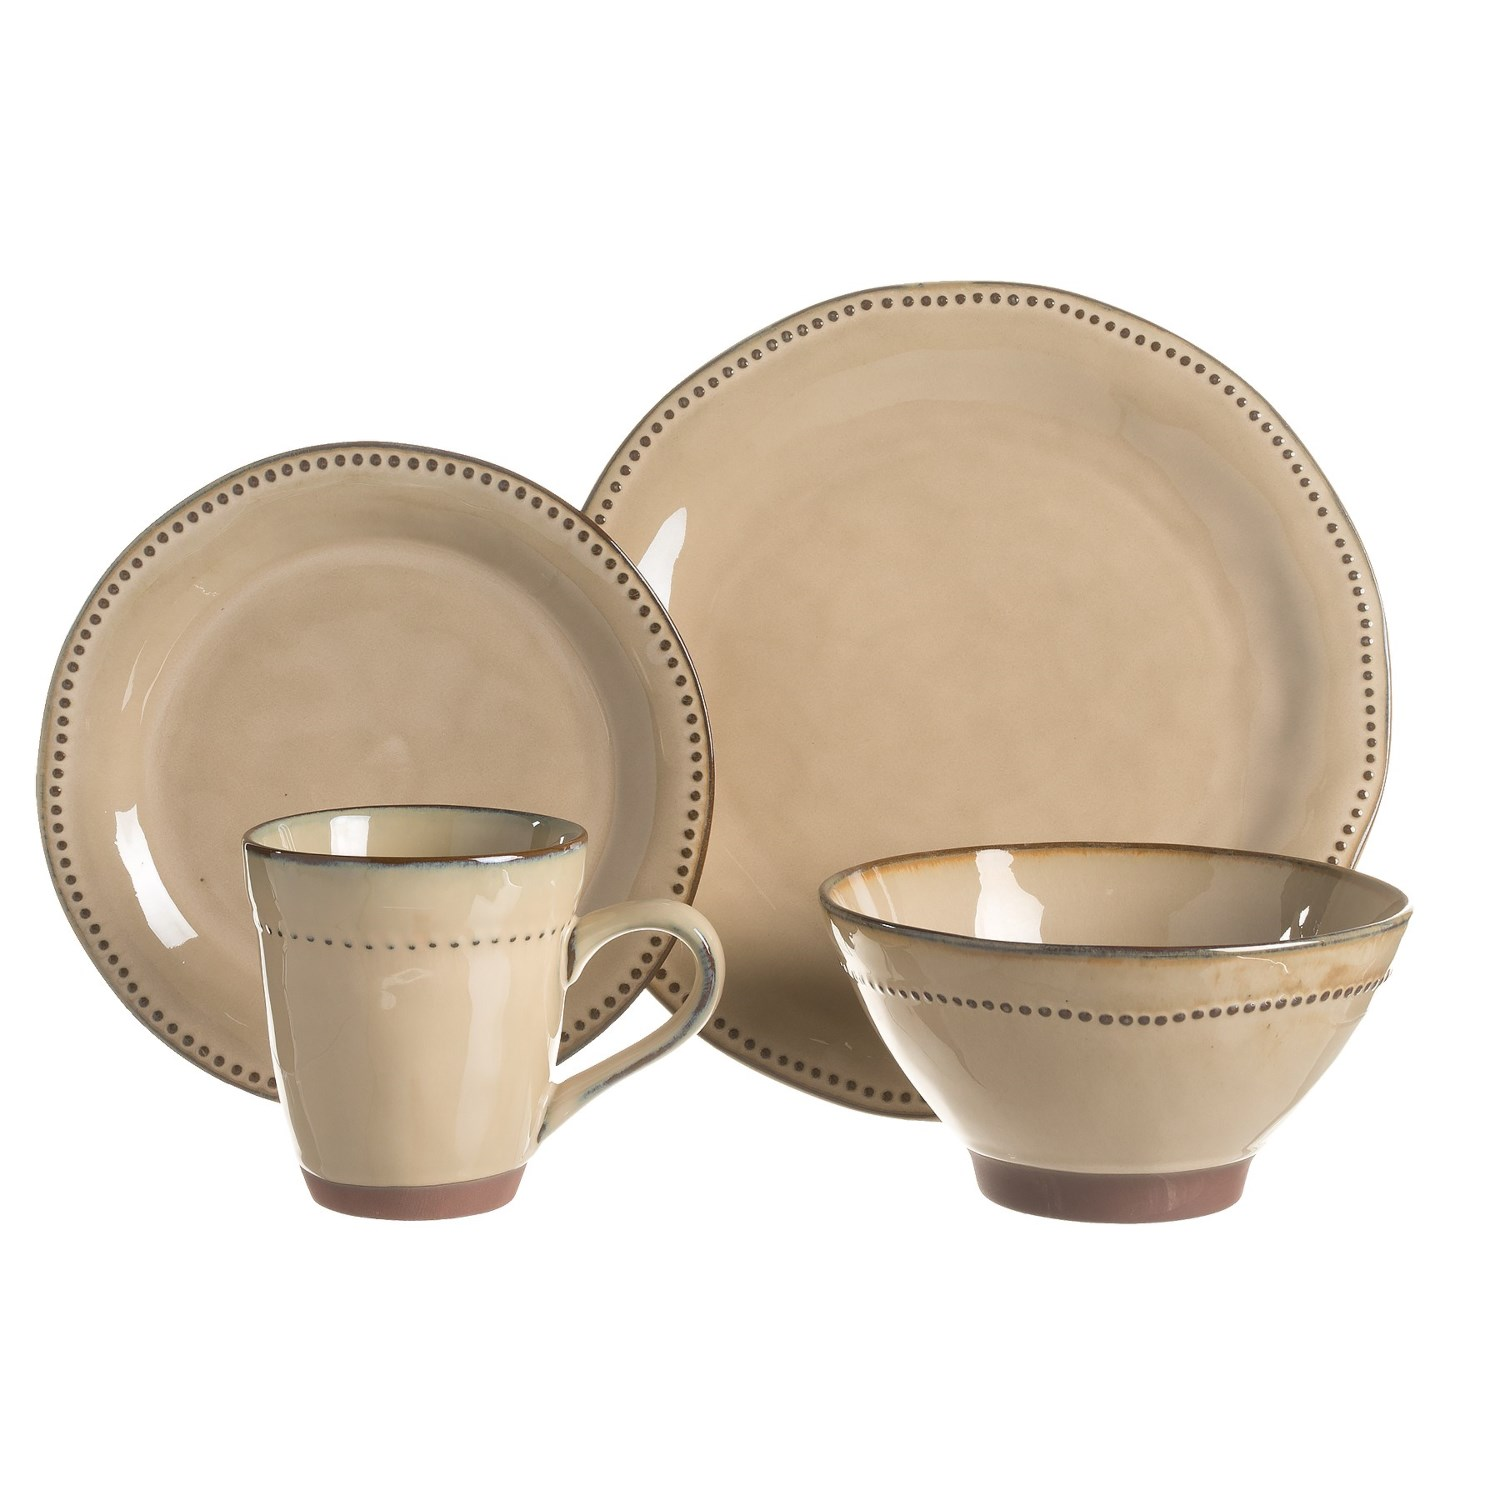 Sango Cyprus Stoneware Dinnerware Set - 16-Piece in Beige. Click to expand  sc 1 st  Sierra Trading Post & Sango Cyprus Stoneware Dinnerware Set - 16-Piece - Save 37%